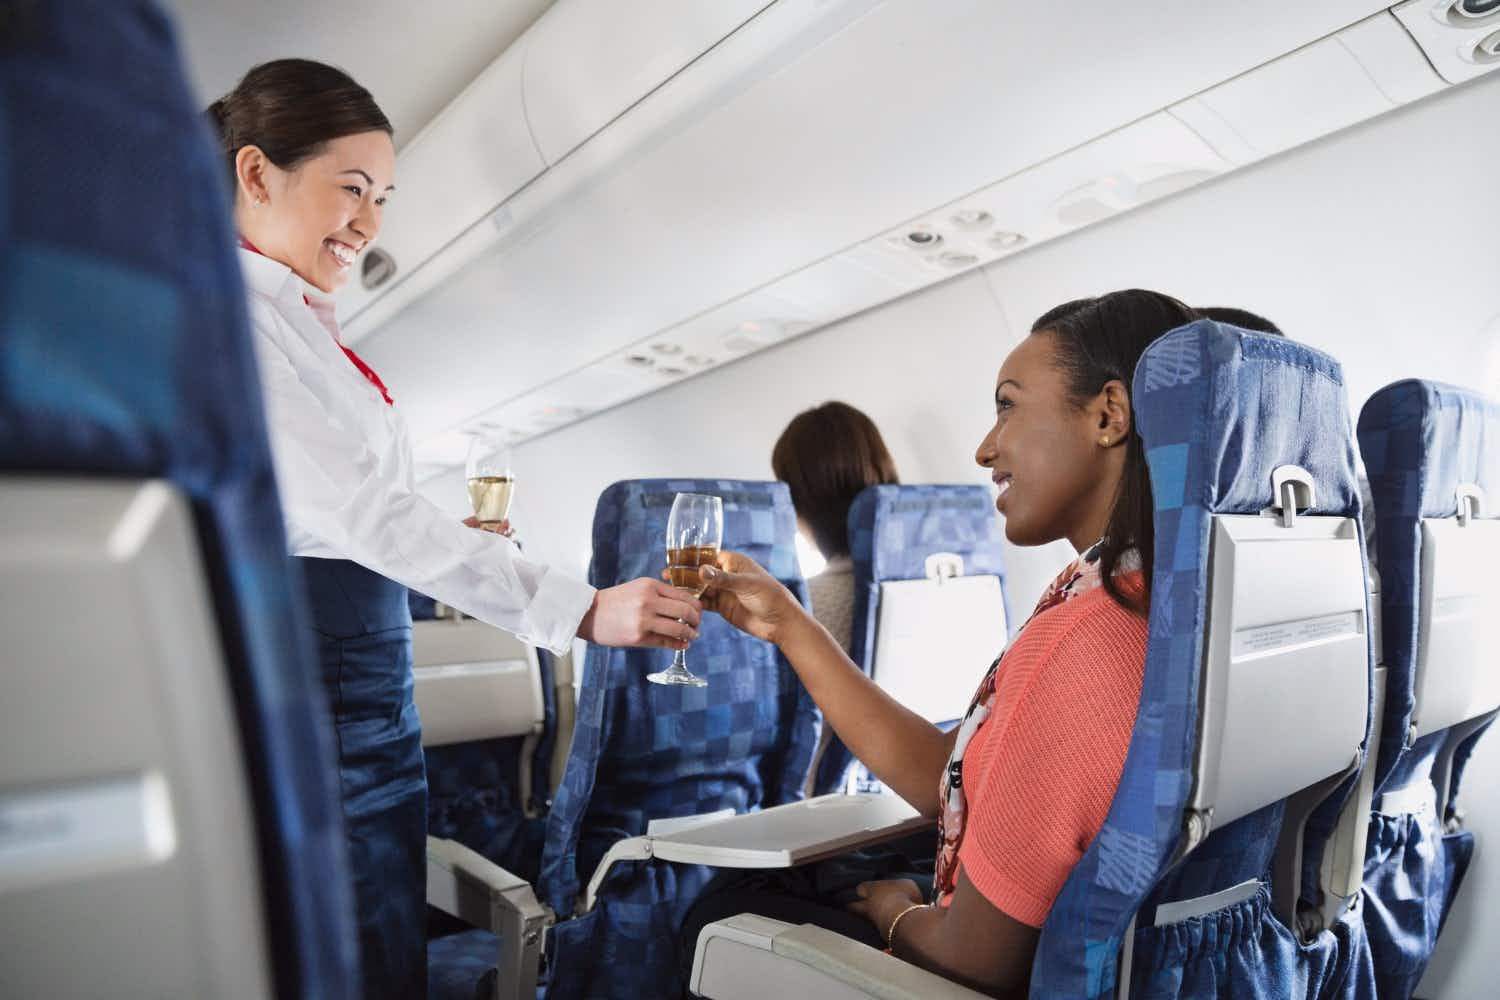 You're more likely to get better service on an airplane if you sit here